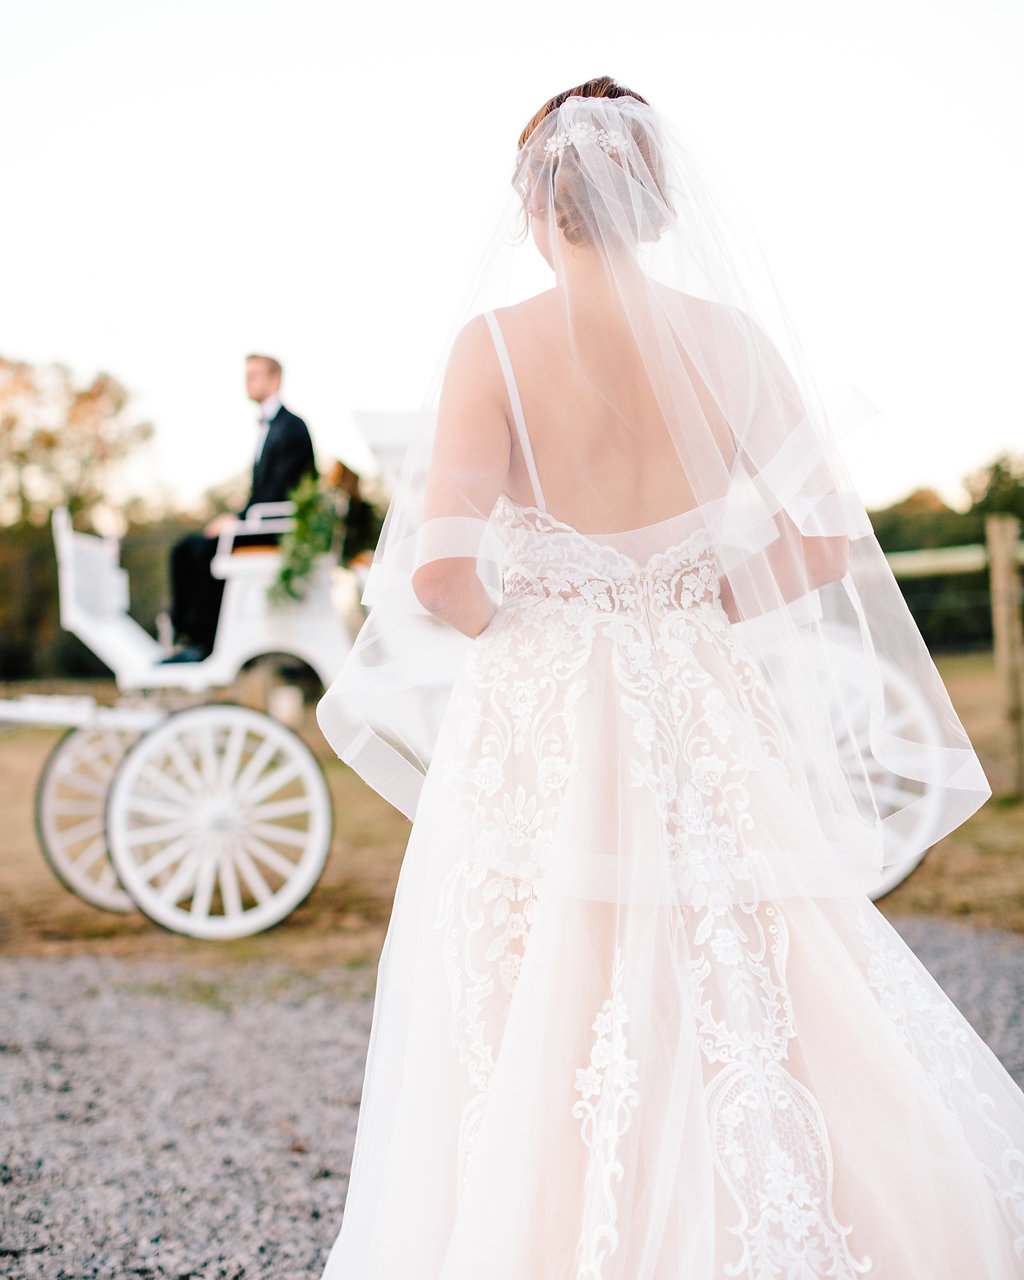 Back of gown from Verita Bridal Boutique at Sugah Cain Plantation  Bride and her maids at Sugah Cain Plantation in front of white horse and Carriage  //  on A Lowocountry Wedding Magazine & Blog